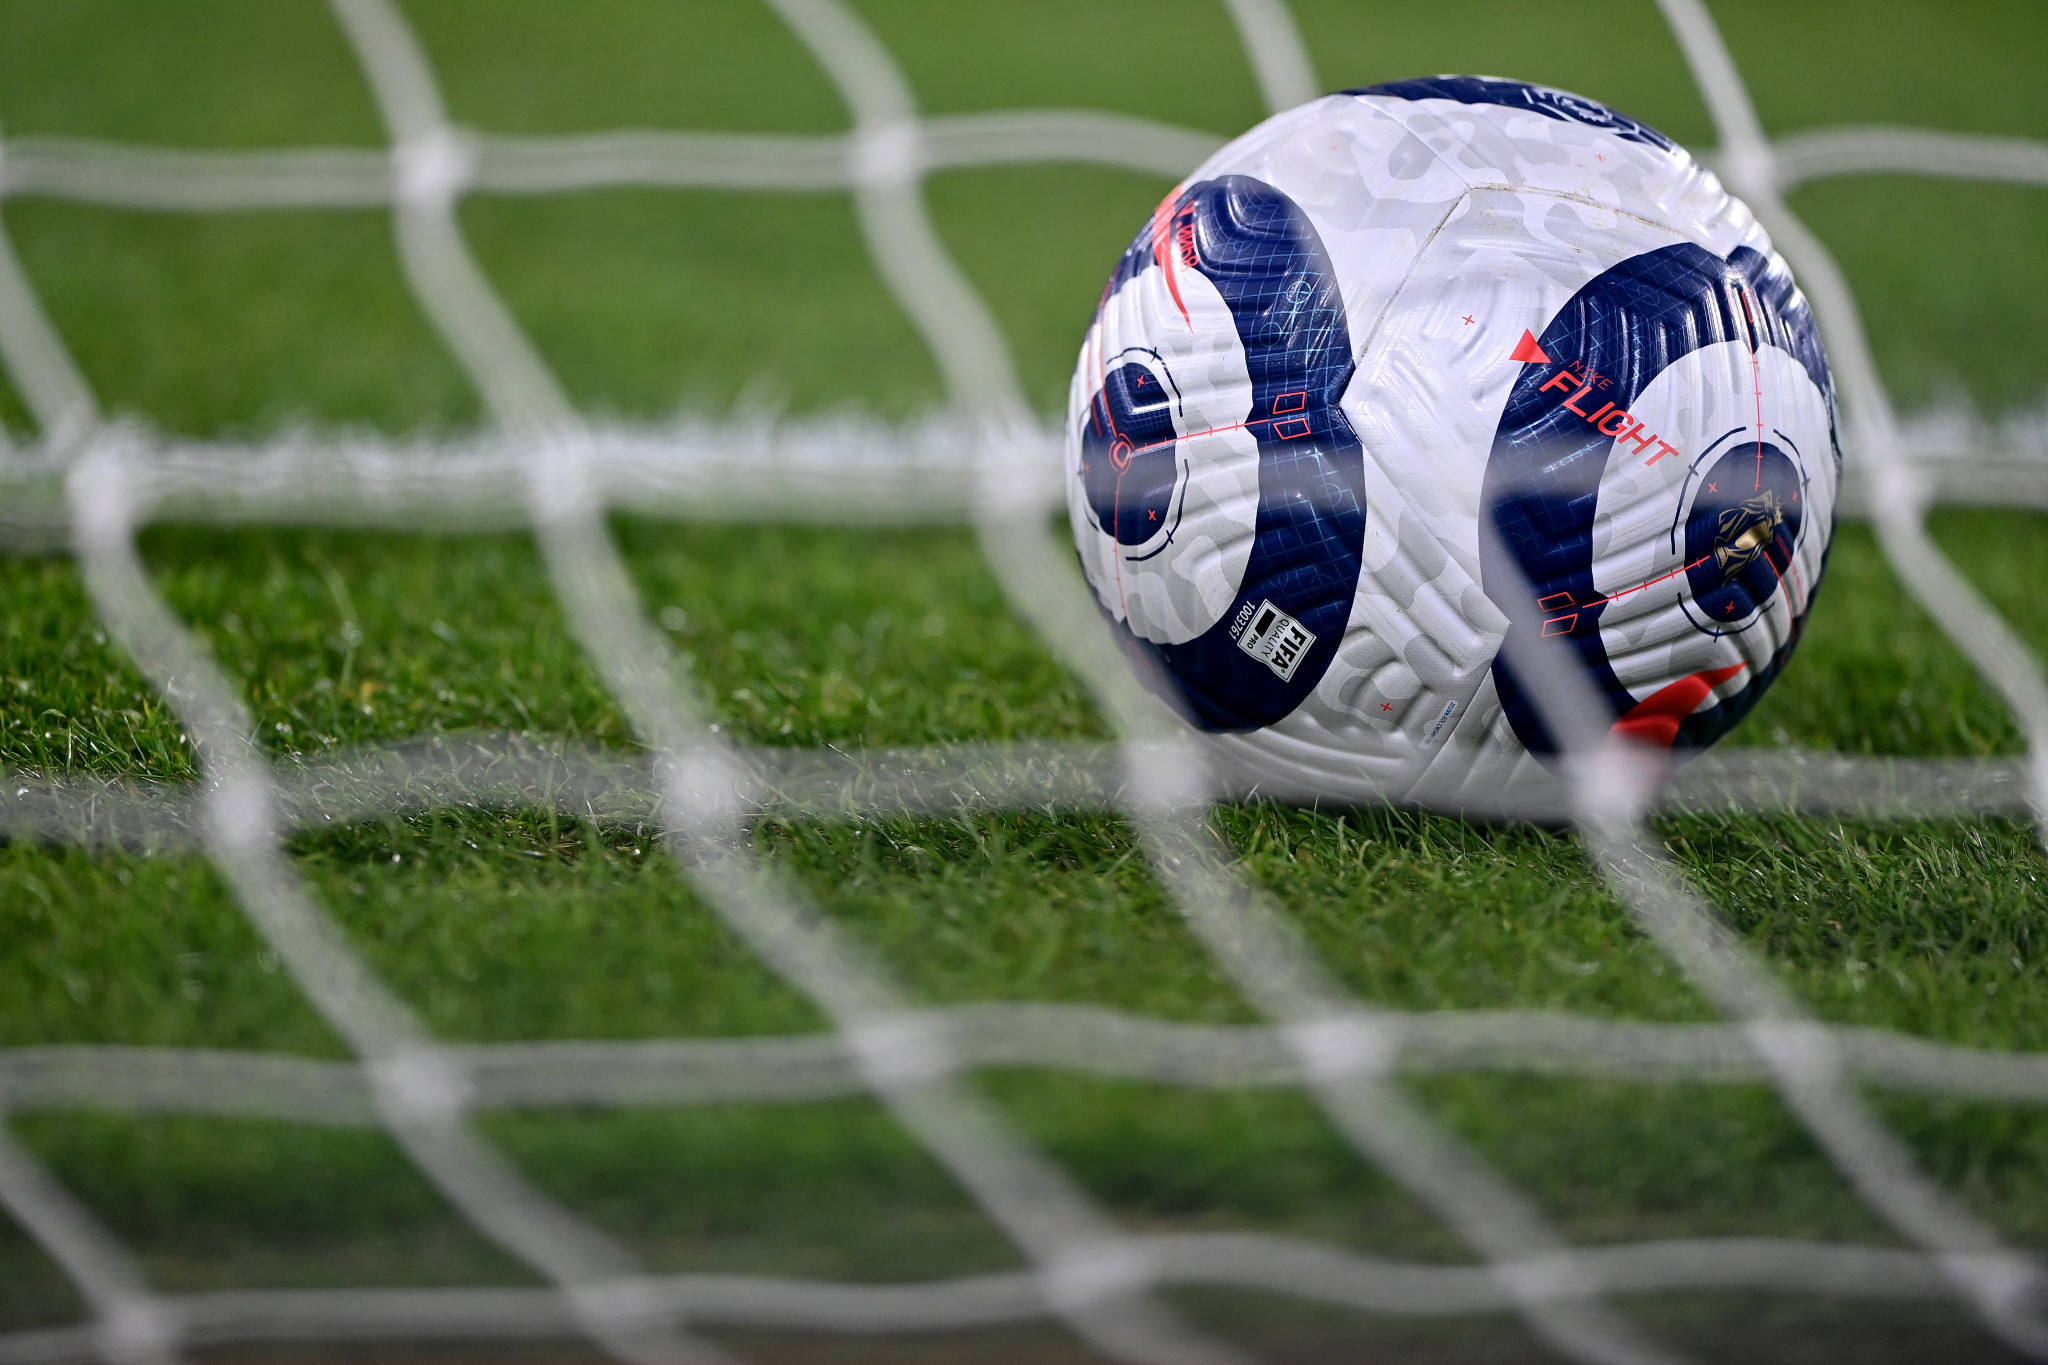 Teenage footballer banned for nine months over possession of growth hormone